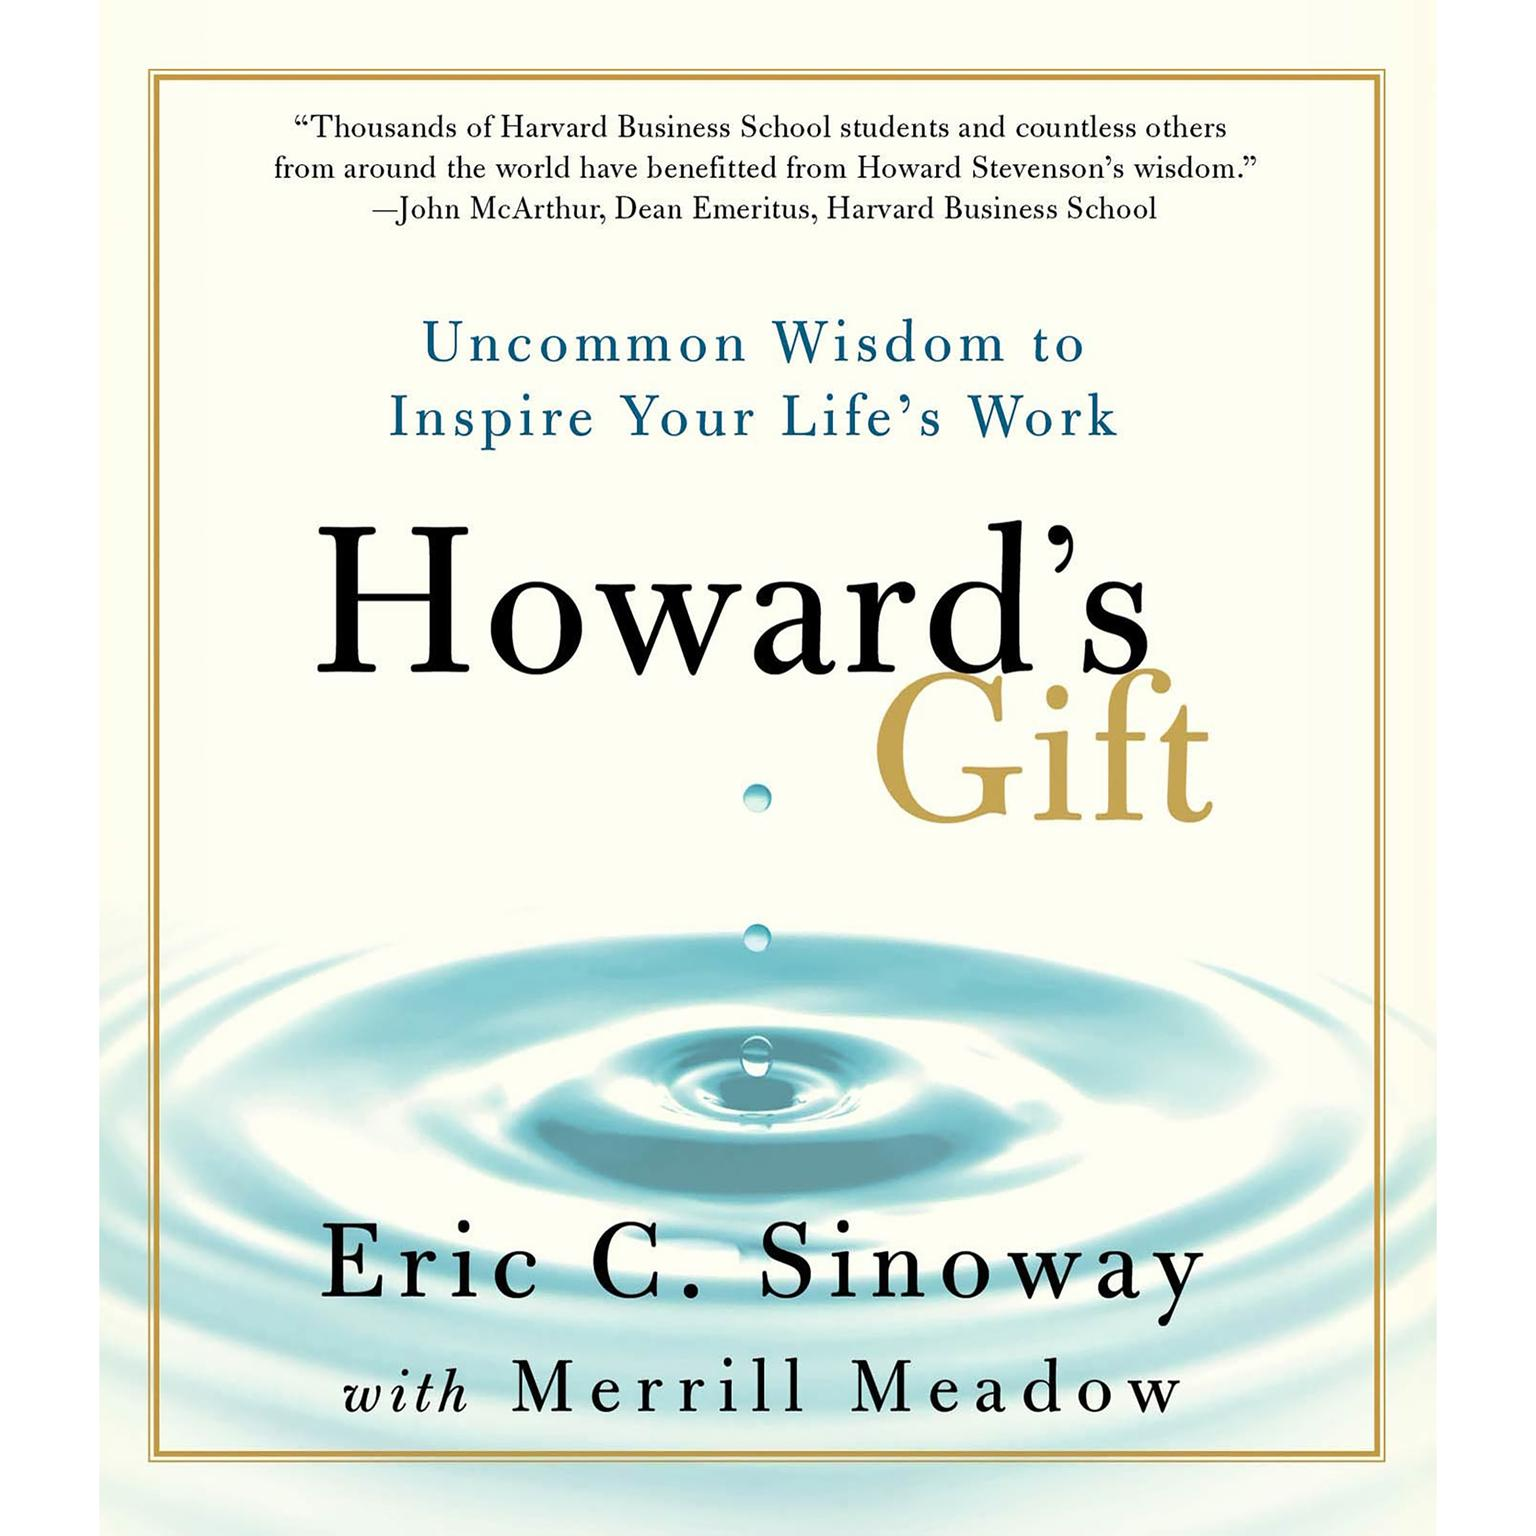 Printable Howard's Gift: Uncommon Wisdom to Inspire Your Life's Work Audiobook Cover Art